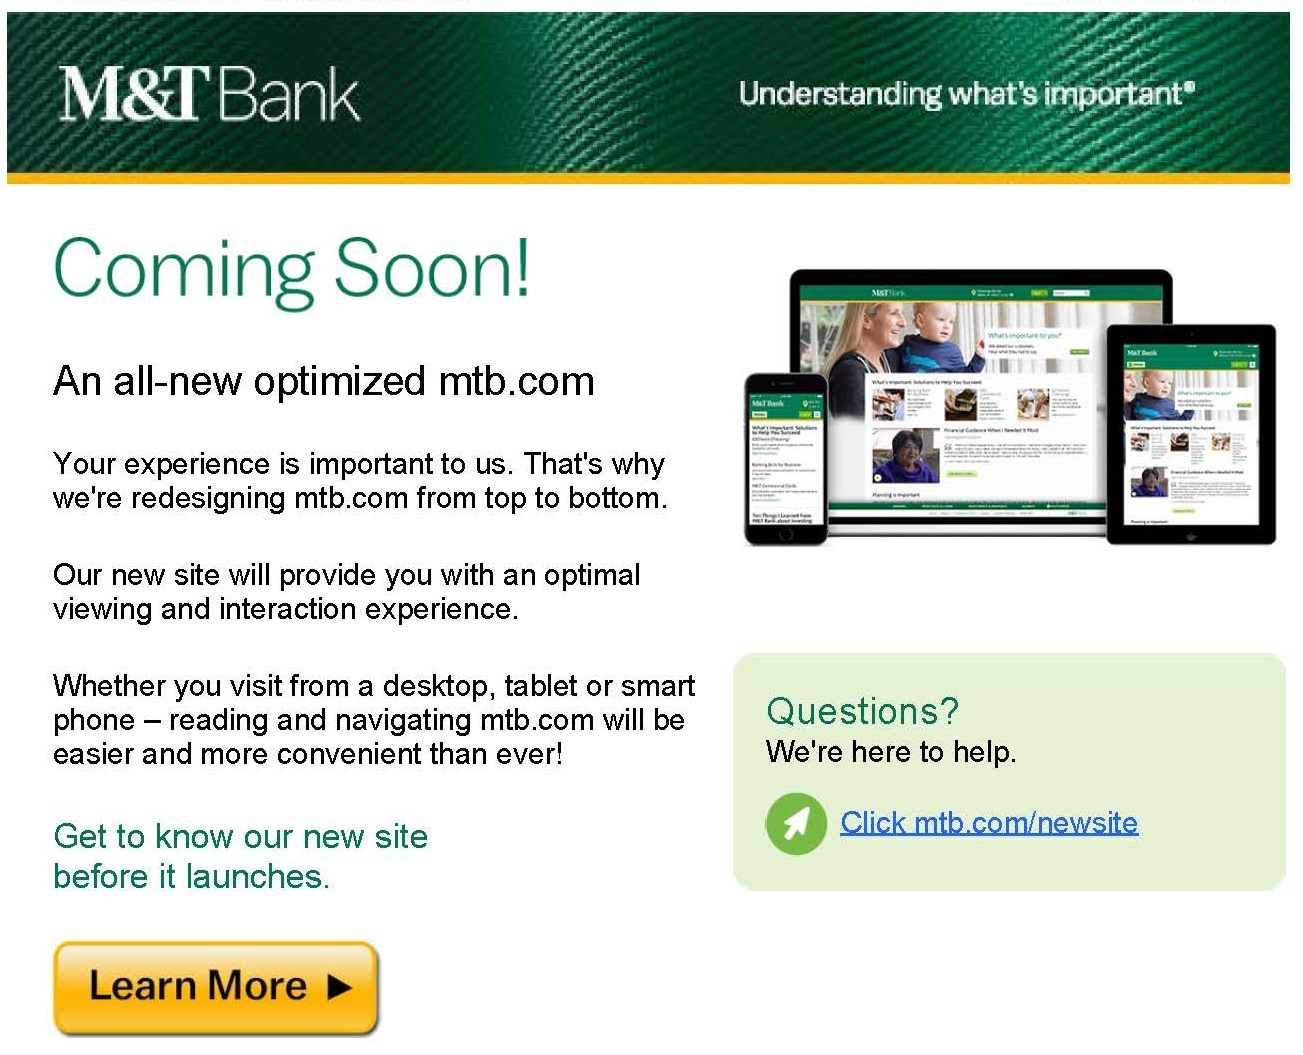 Bank email to customers promote new online experience